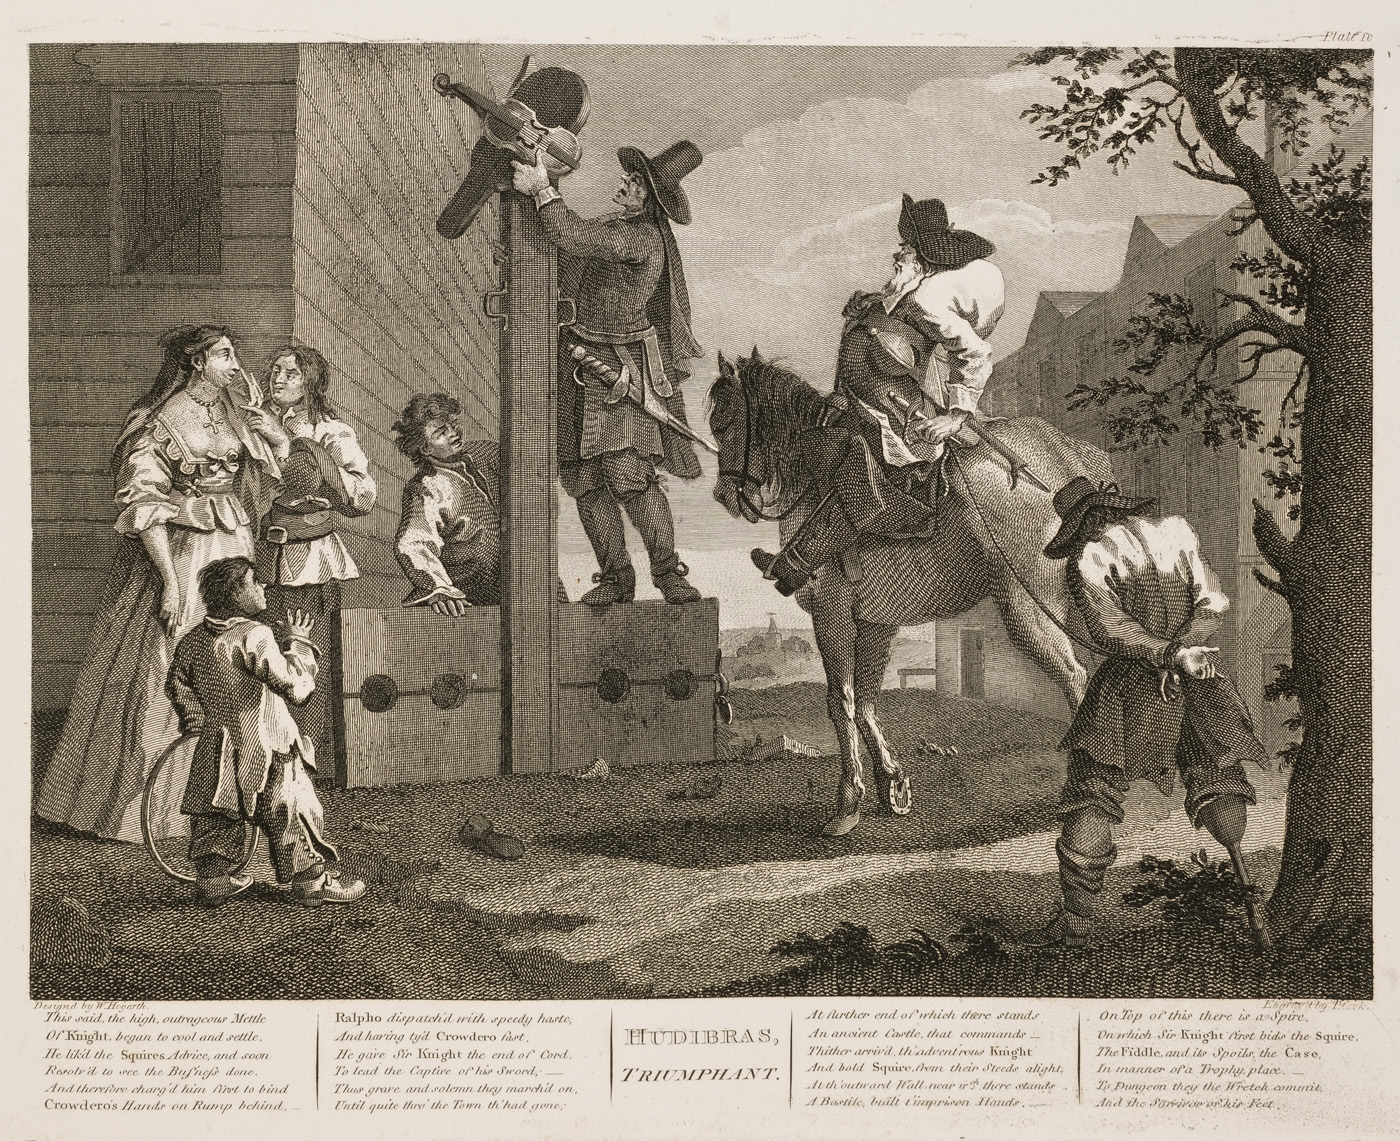 William Hogarth - Hudibras plate 10